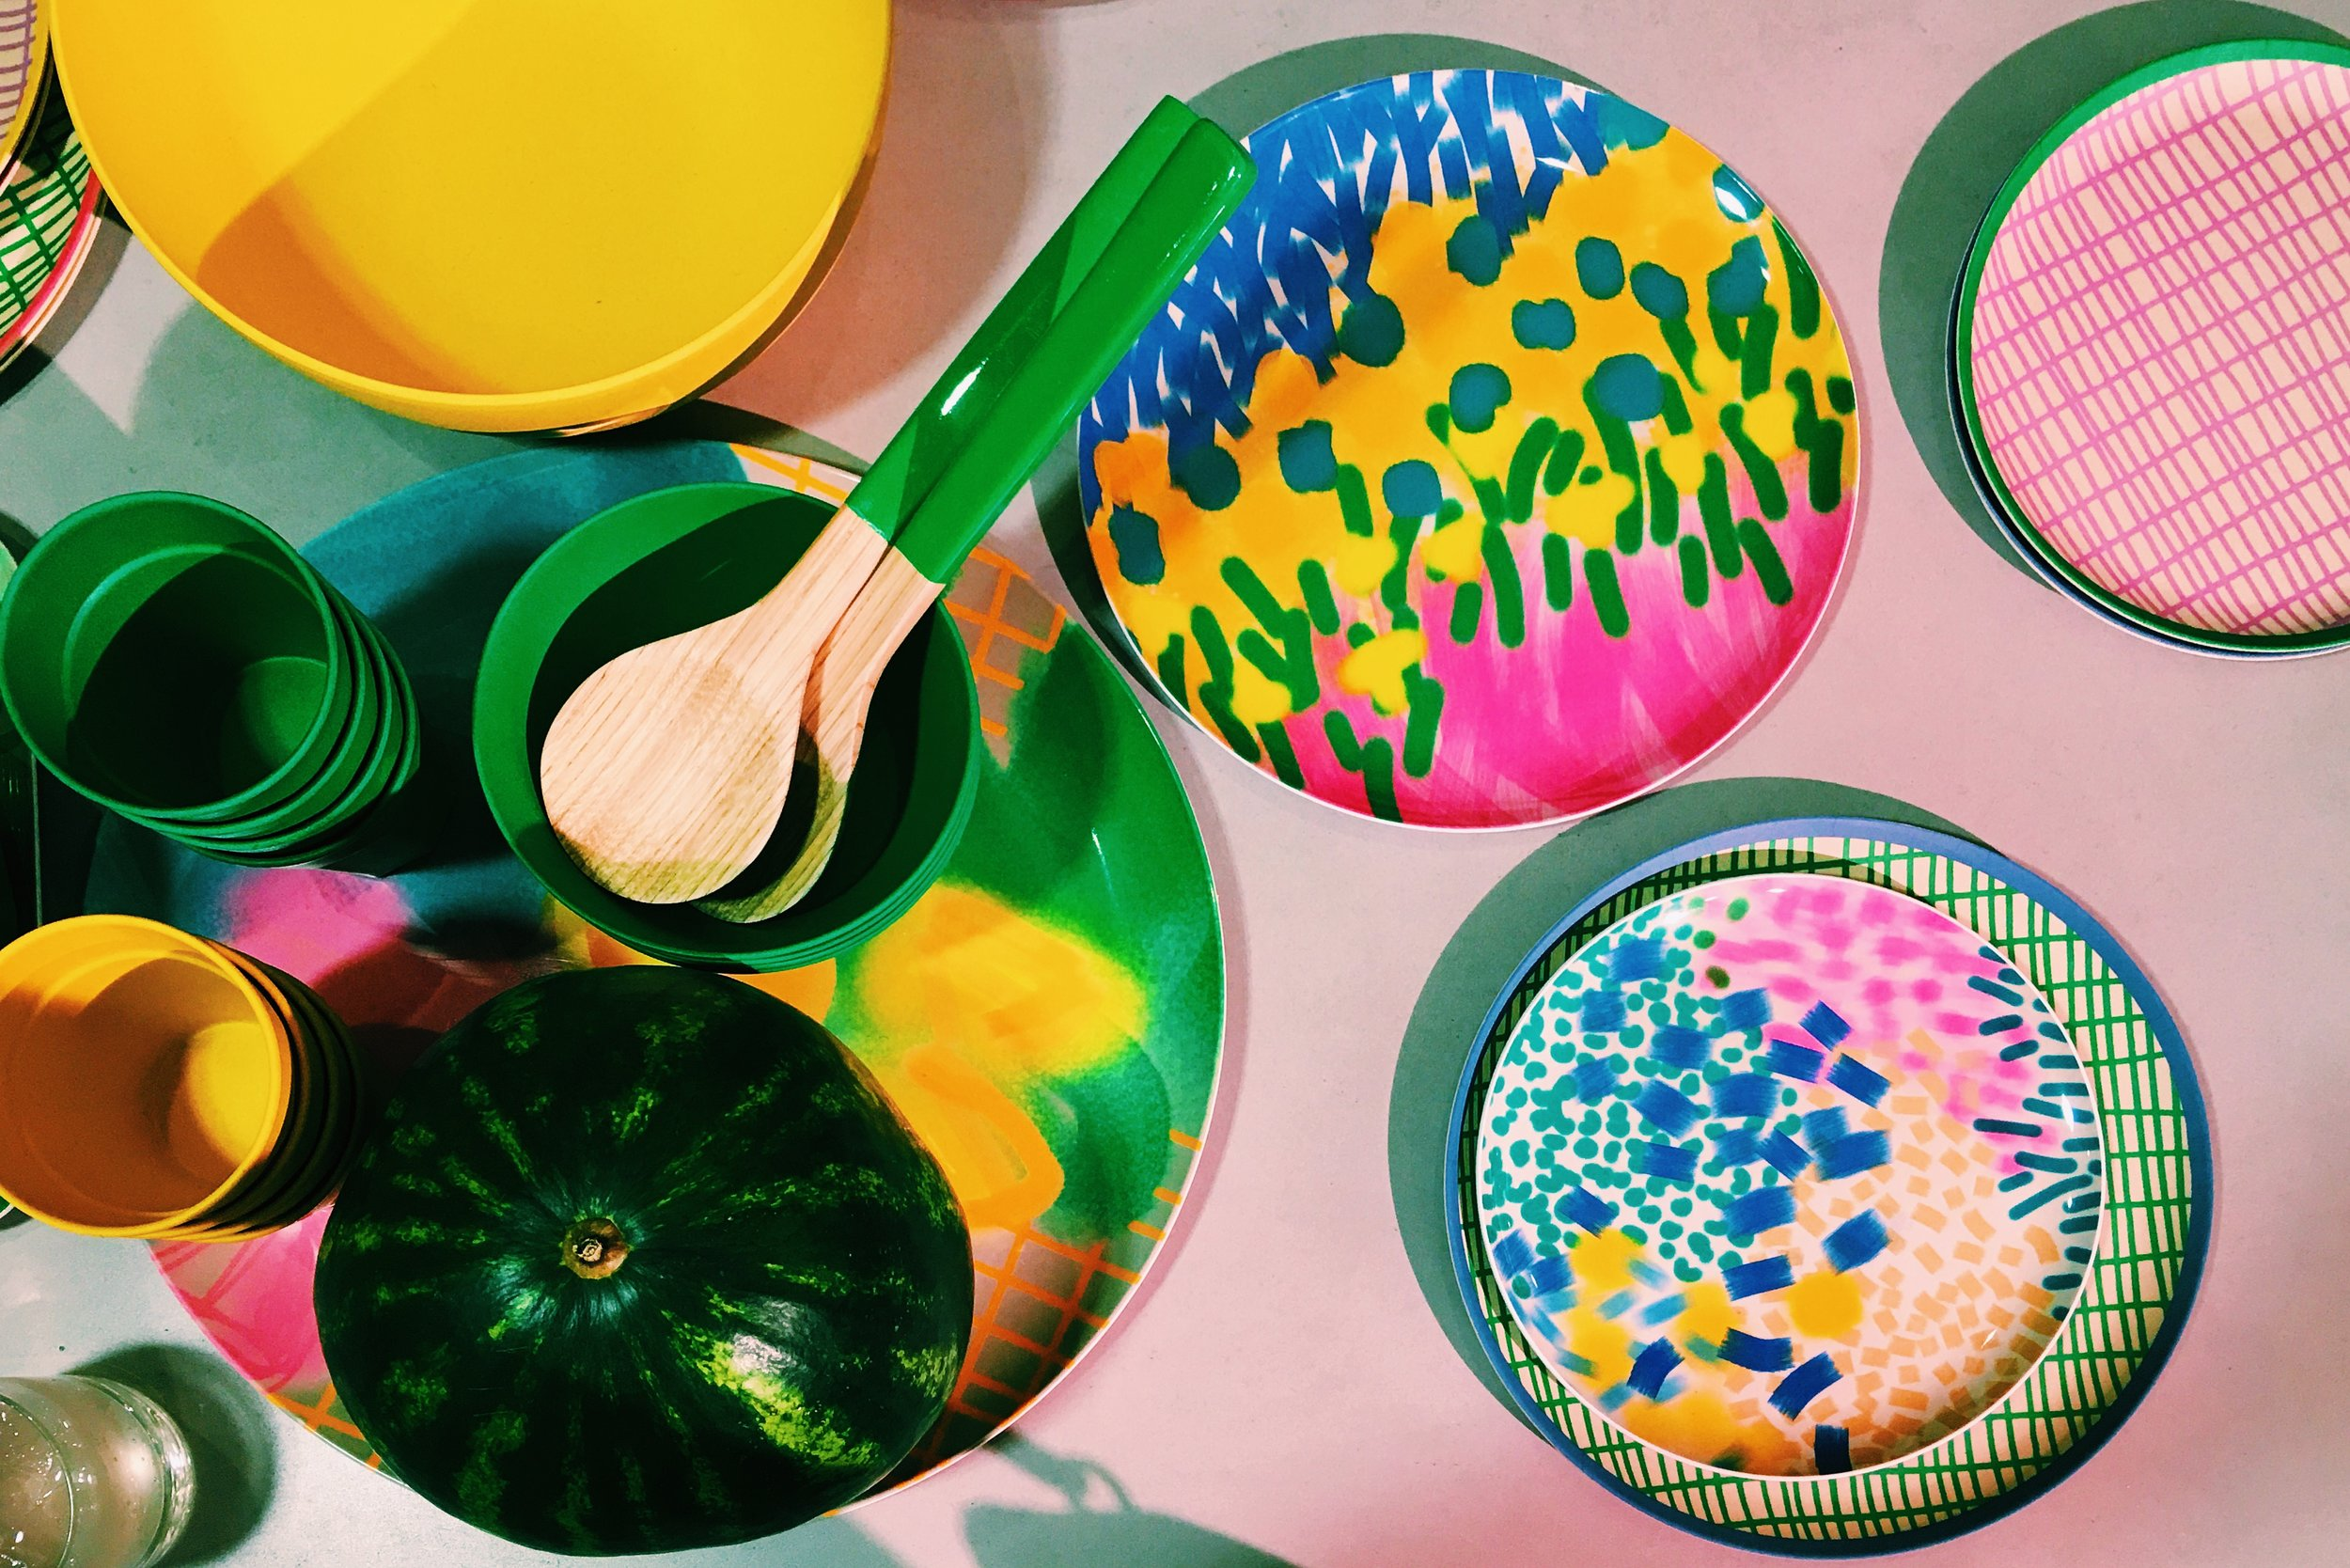 Corocco plates, from £10.